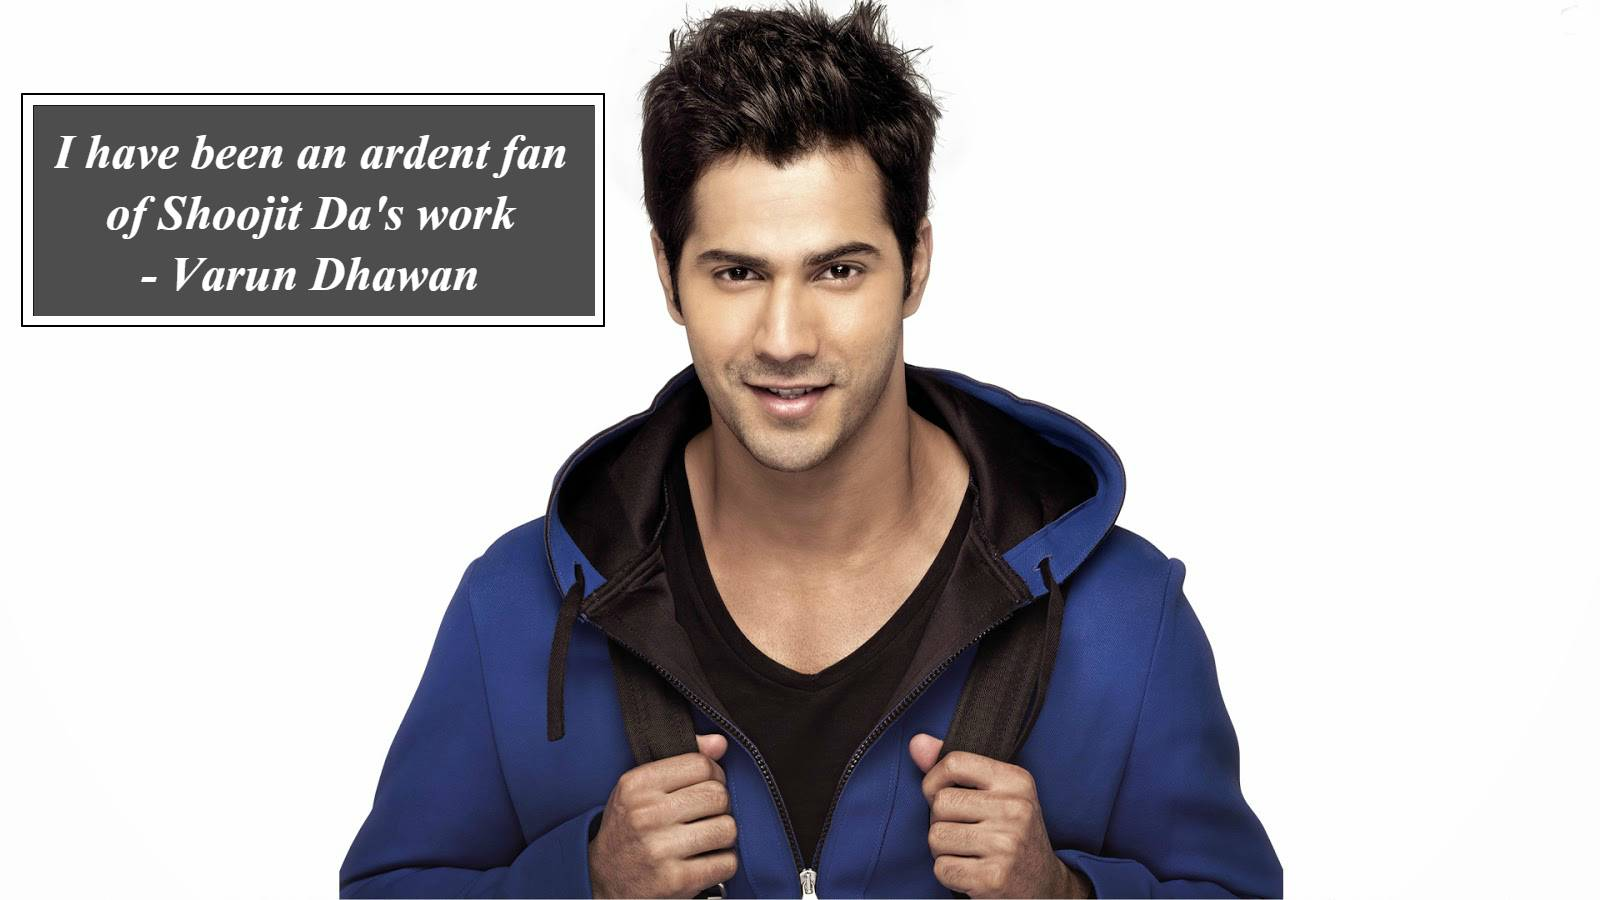 Varun Dhawan To Work In Shoojit Sircar's Next Project